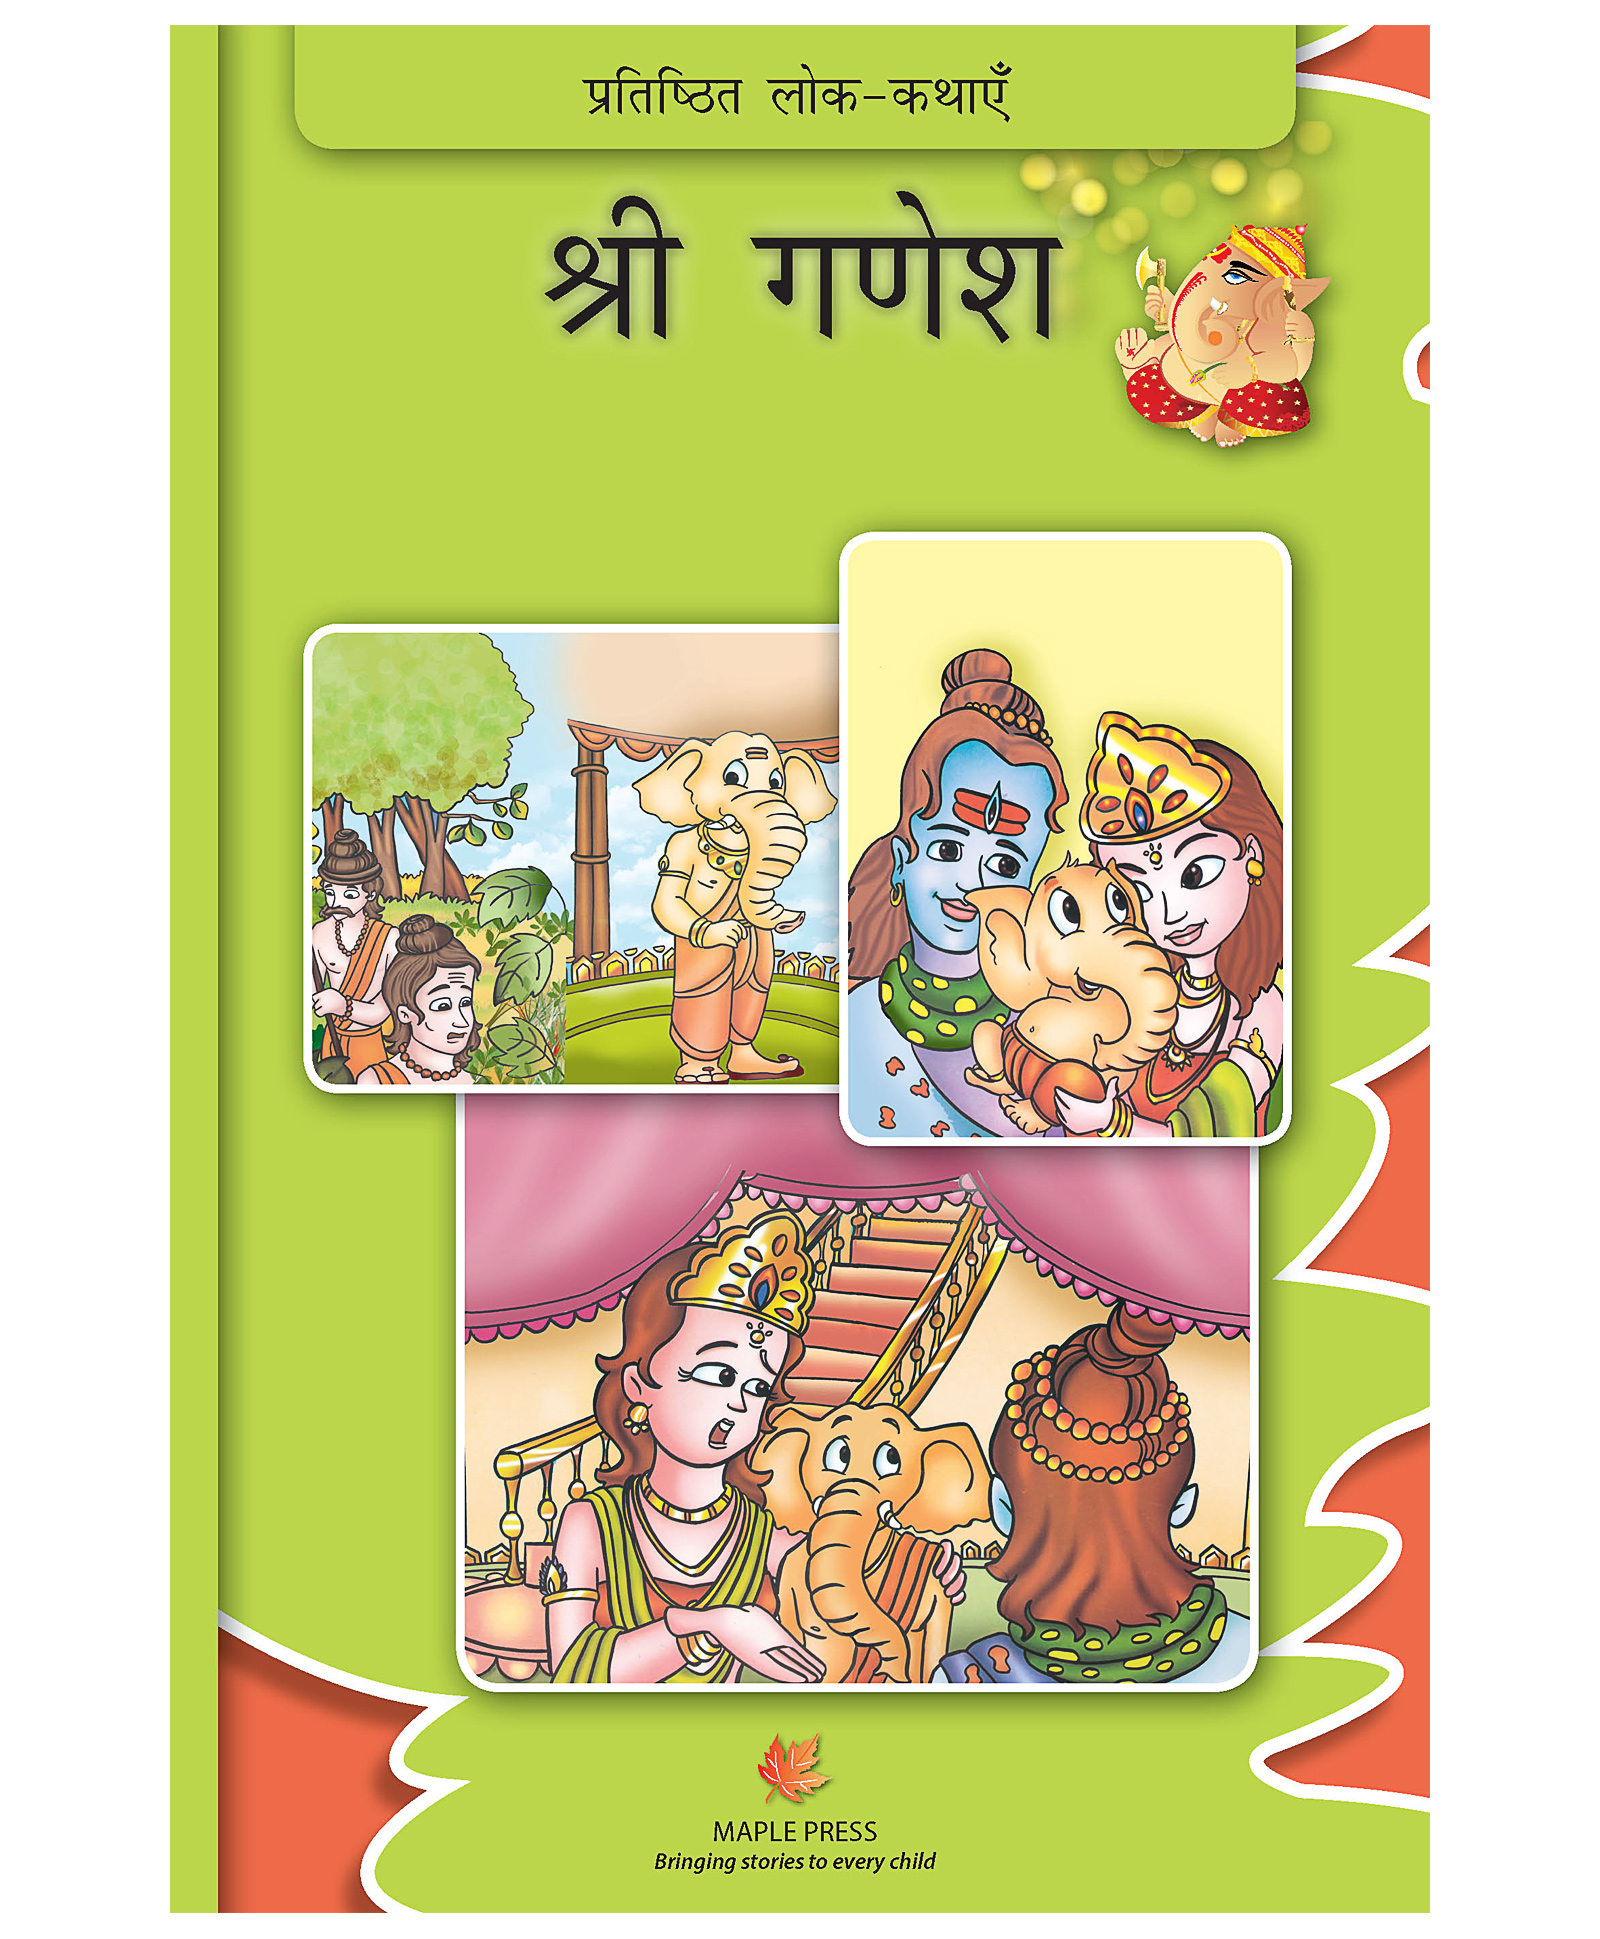 PT Shri Ganesh Hindi Online in India, Buy at Best Price from Firstcry com -  657108